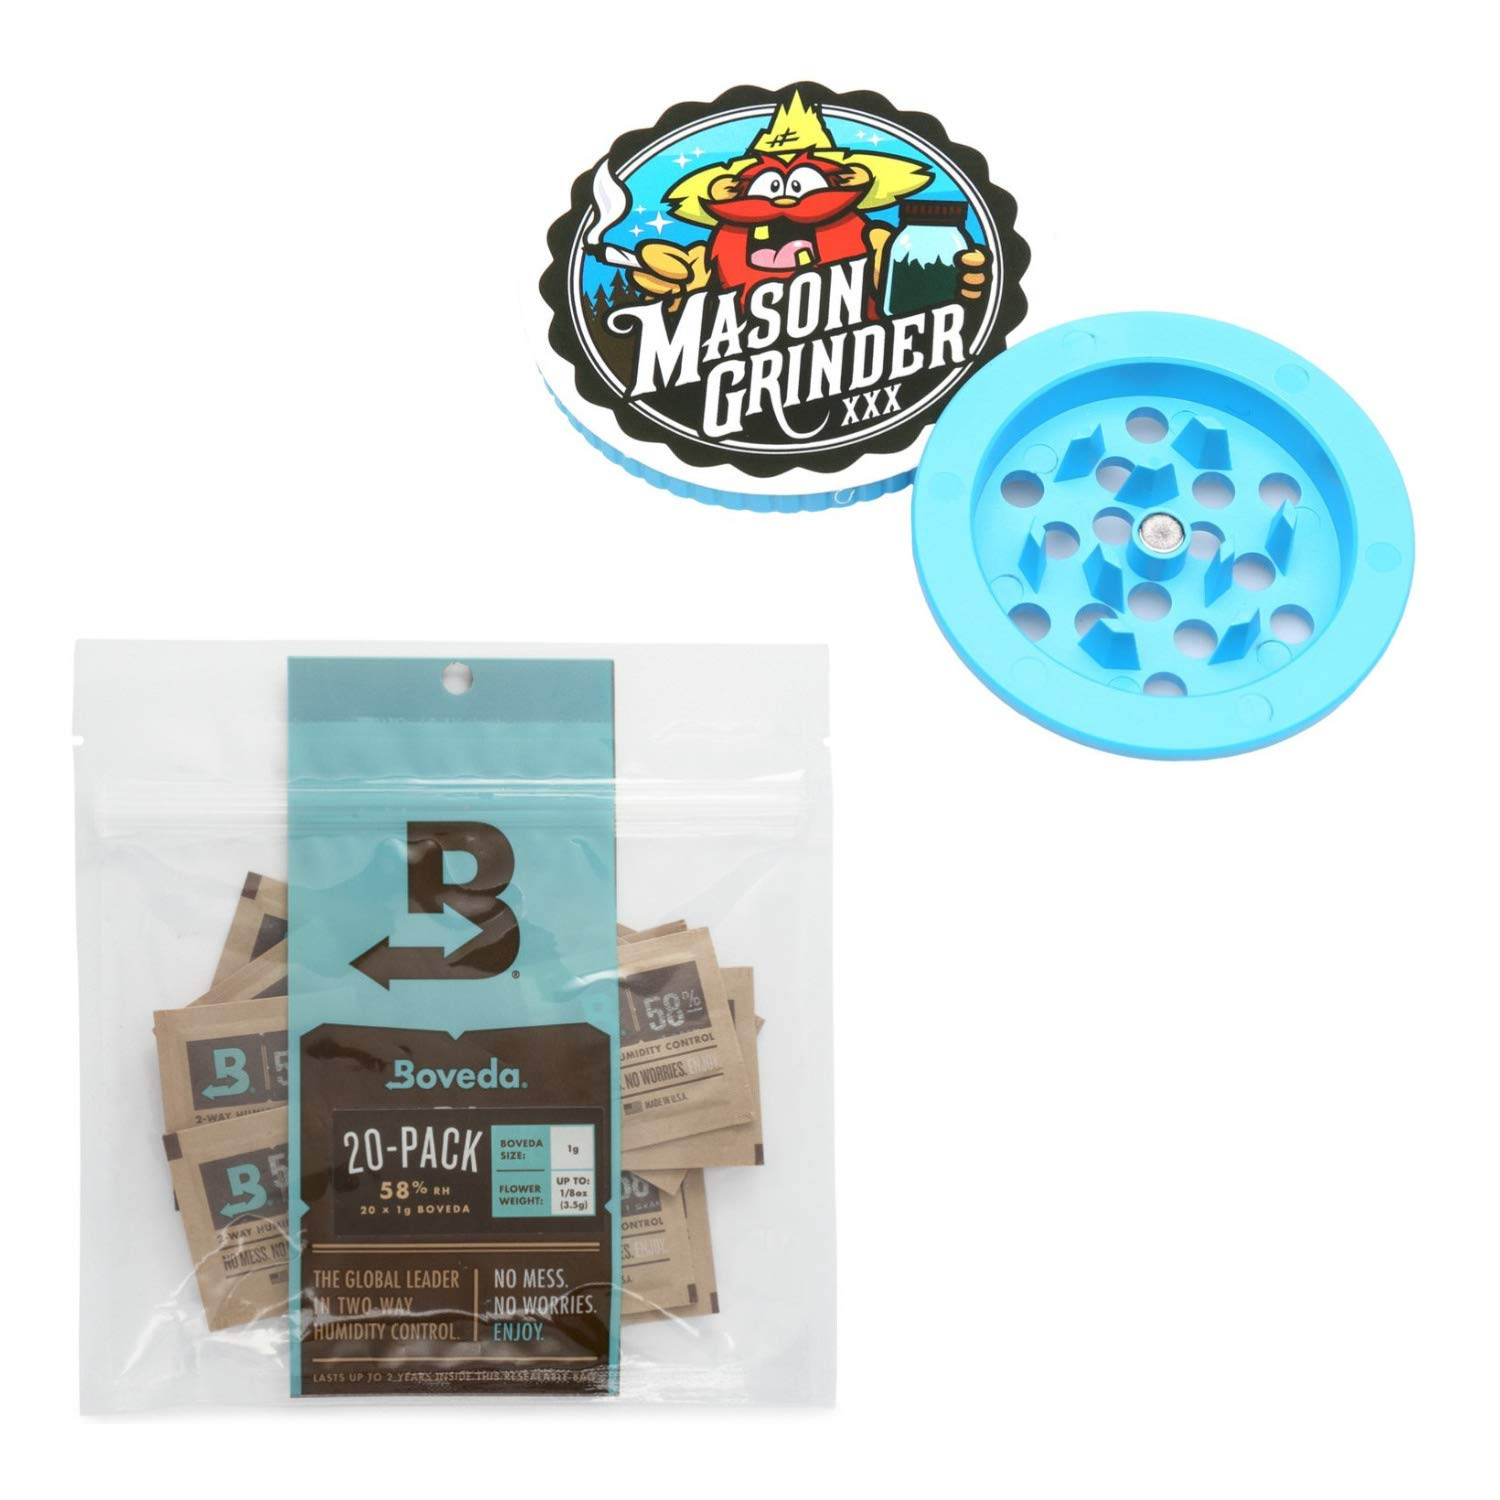 Mason Grinder (Small Mouth W/Holes) & 20 pack of Boveda 1g 58% RH Humidity Pack